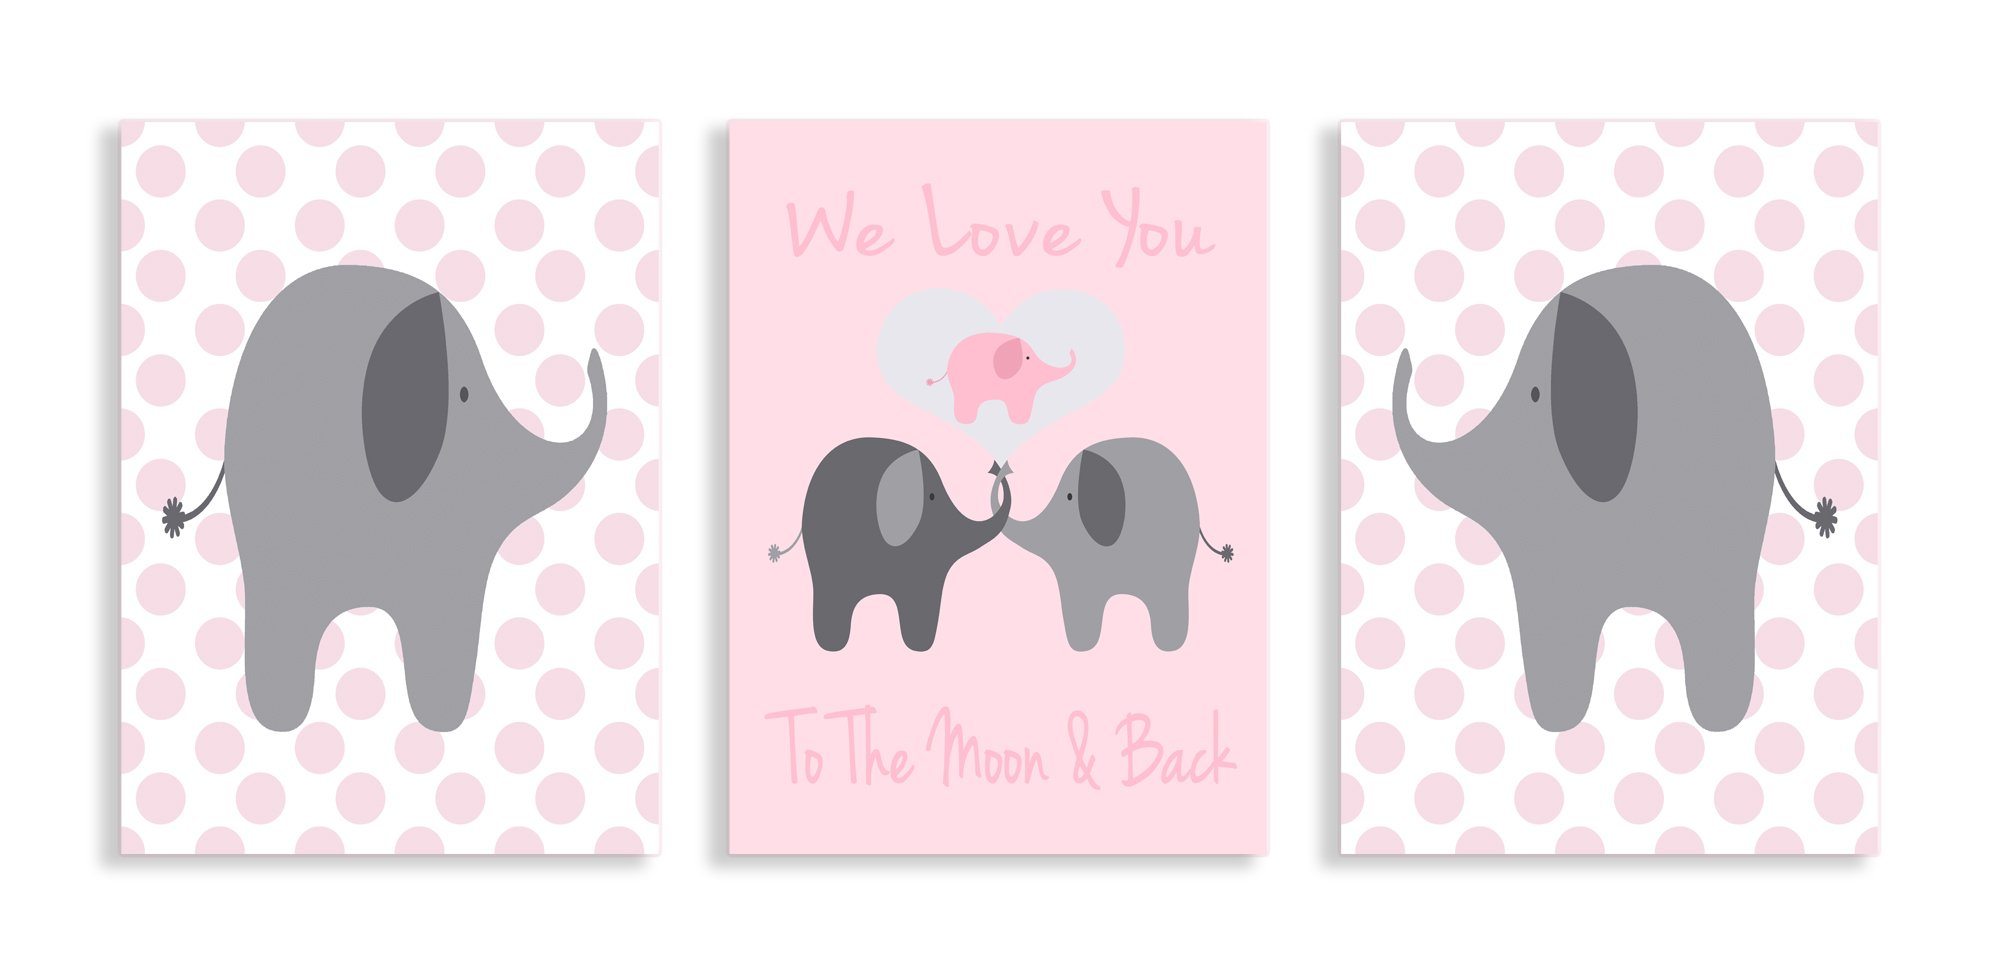 The Kids Room by Stupell We Love You to the Moon and Back 3-Pc. Rectangle Wall PlaqueSet